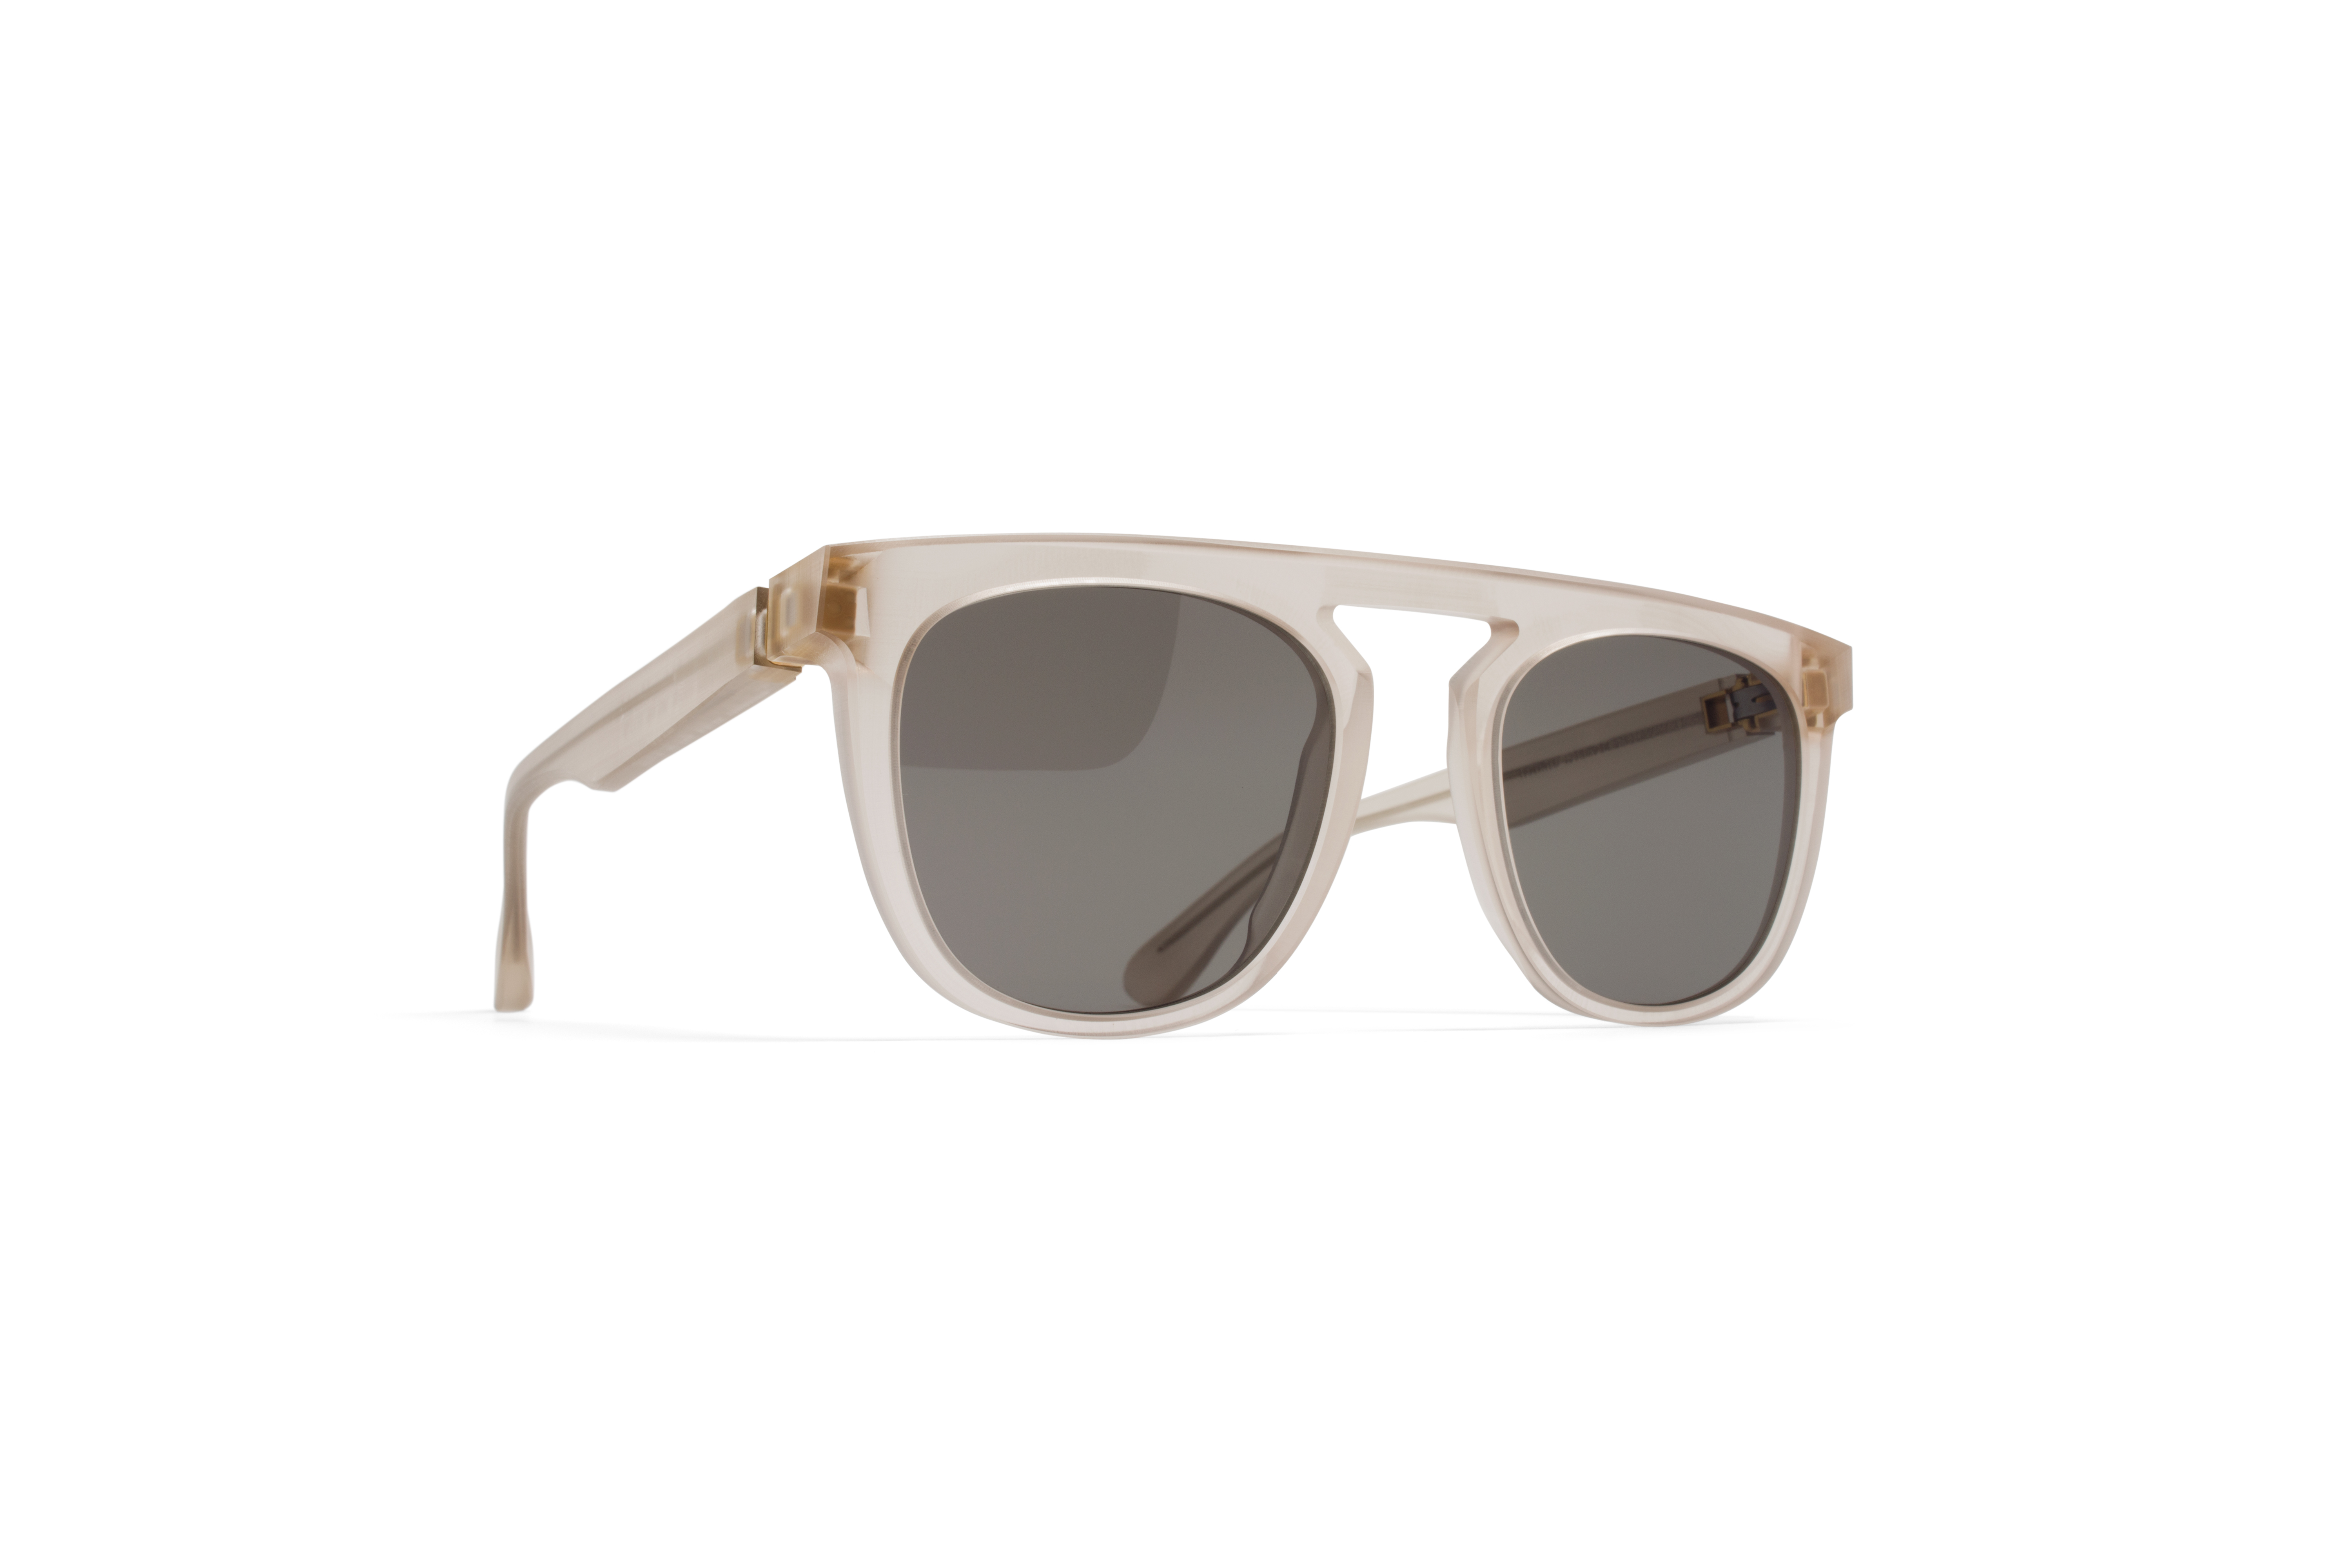 MYKITA Mm Sun Mmraw004 Raw Champagne Darkgrey So57fe2c0e37bfb